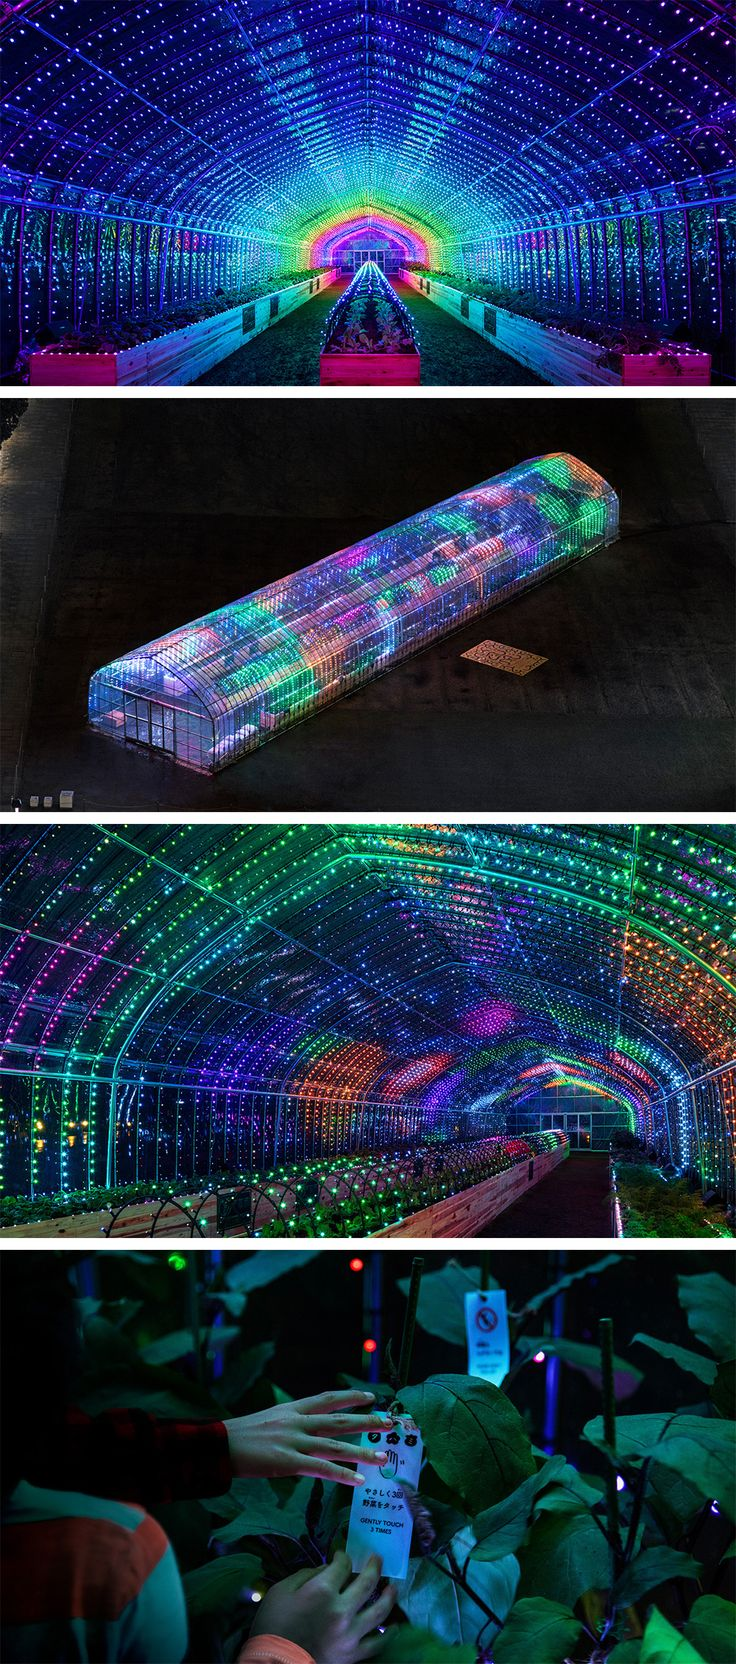 Plant Party: A Greenhouse in Tokyo Bursts Into a Dazzling Light Show When You Touch the Plants Inside